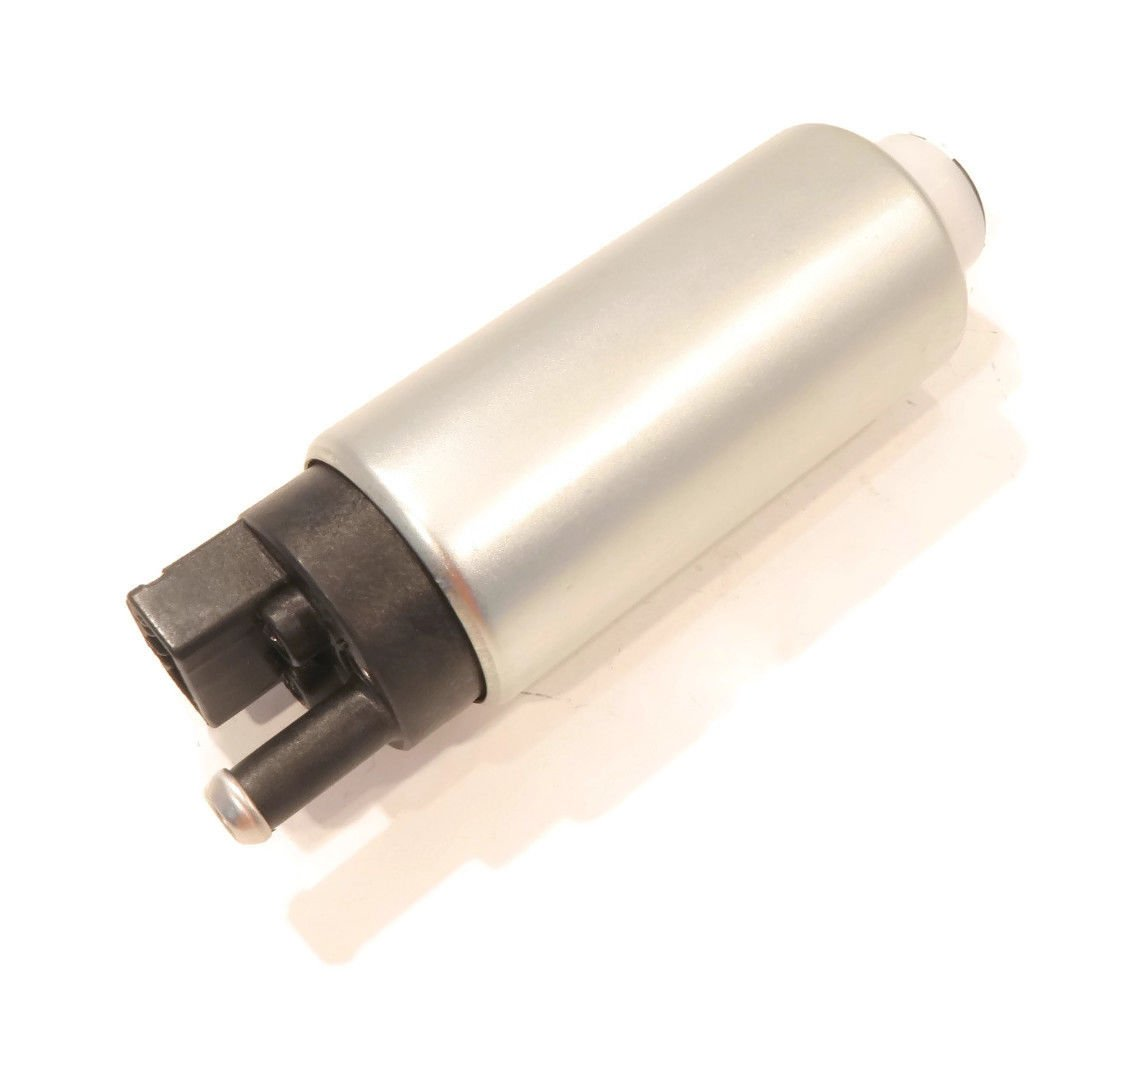 The ROP Shop Electric Fuel Pump fits Optimax 200, 225, 275, 300 HP High Pressure Engine